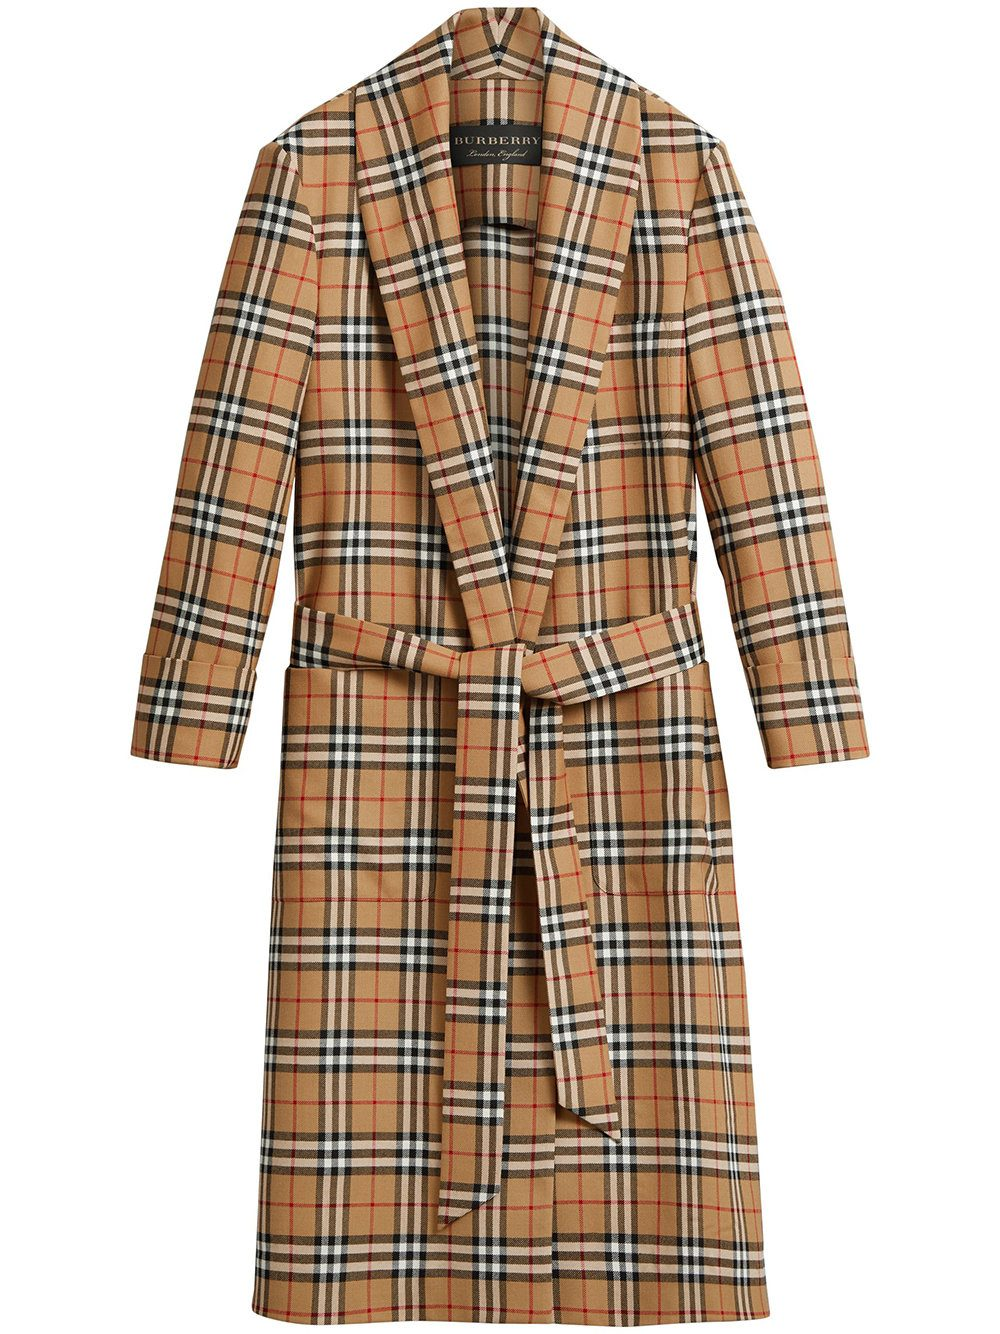 Farfetch Summer Sale Burberry Vintage Dressing Gown